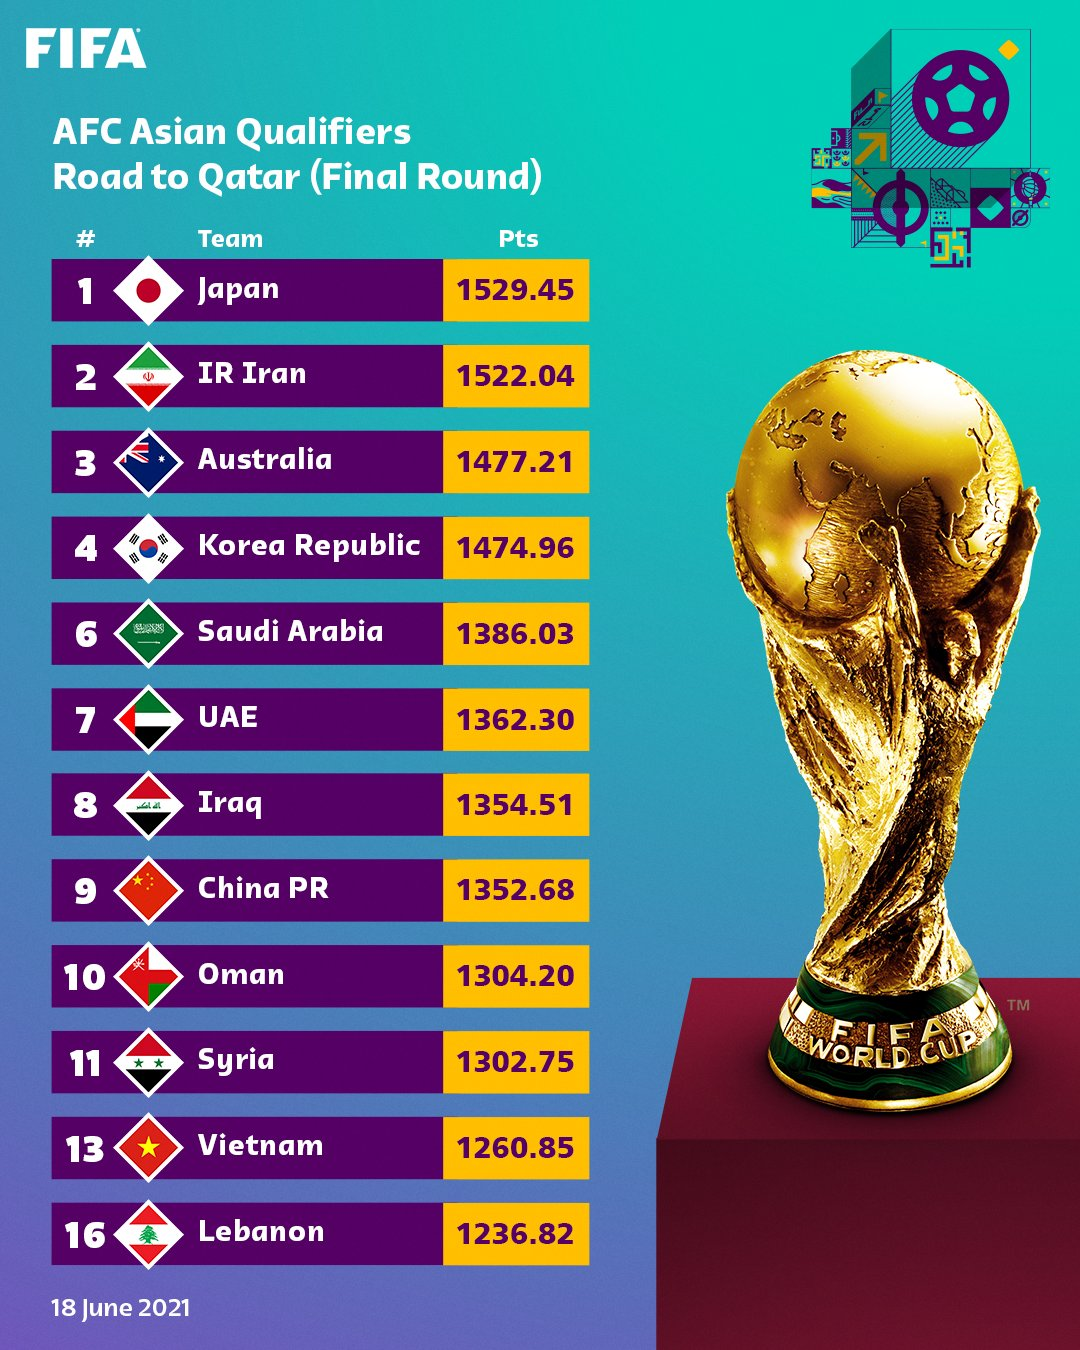 The FIFA Ranking published on 18 June 2021